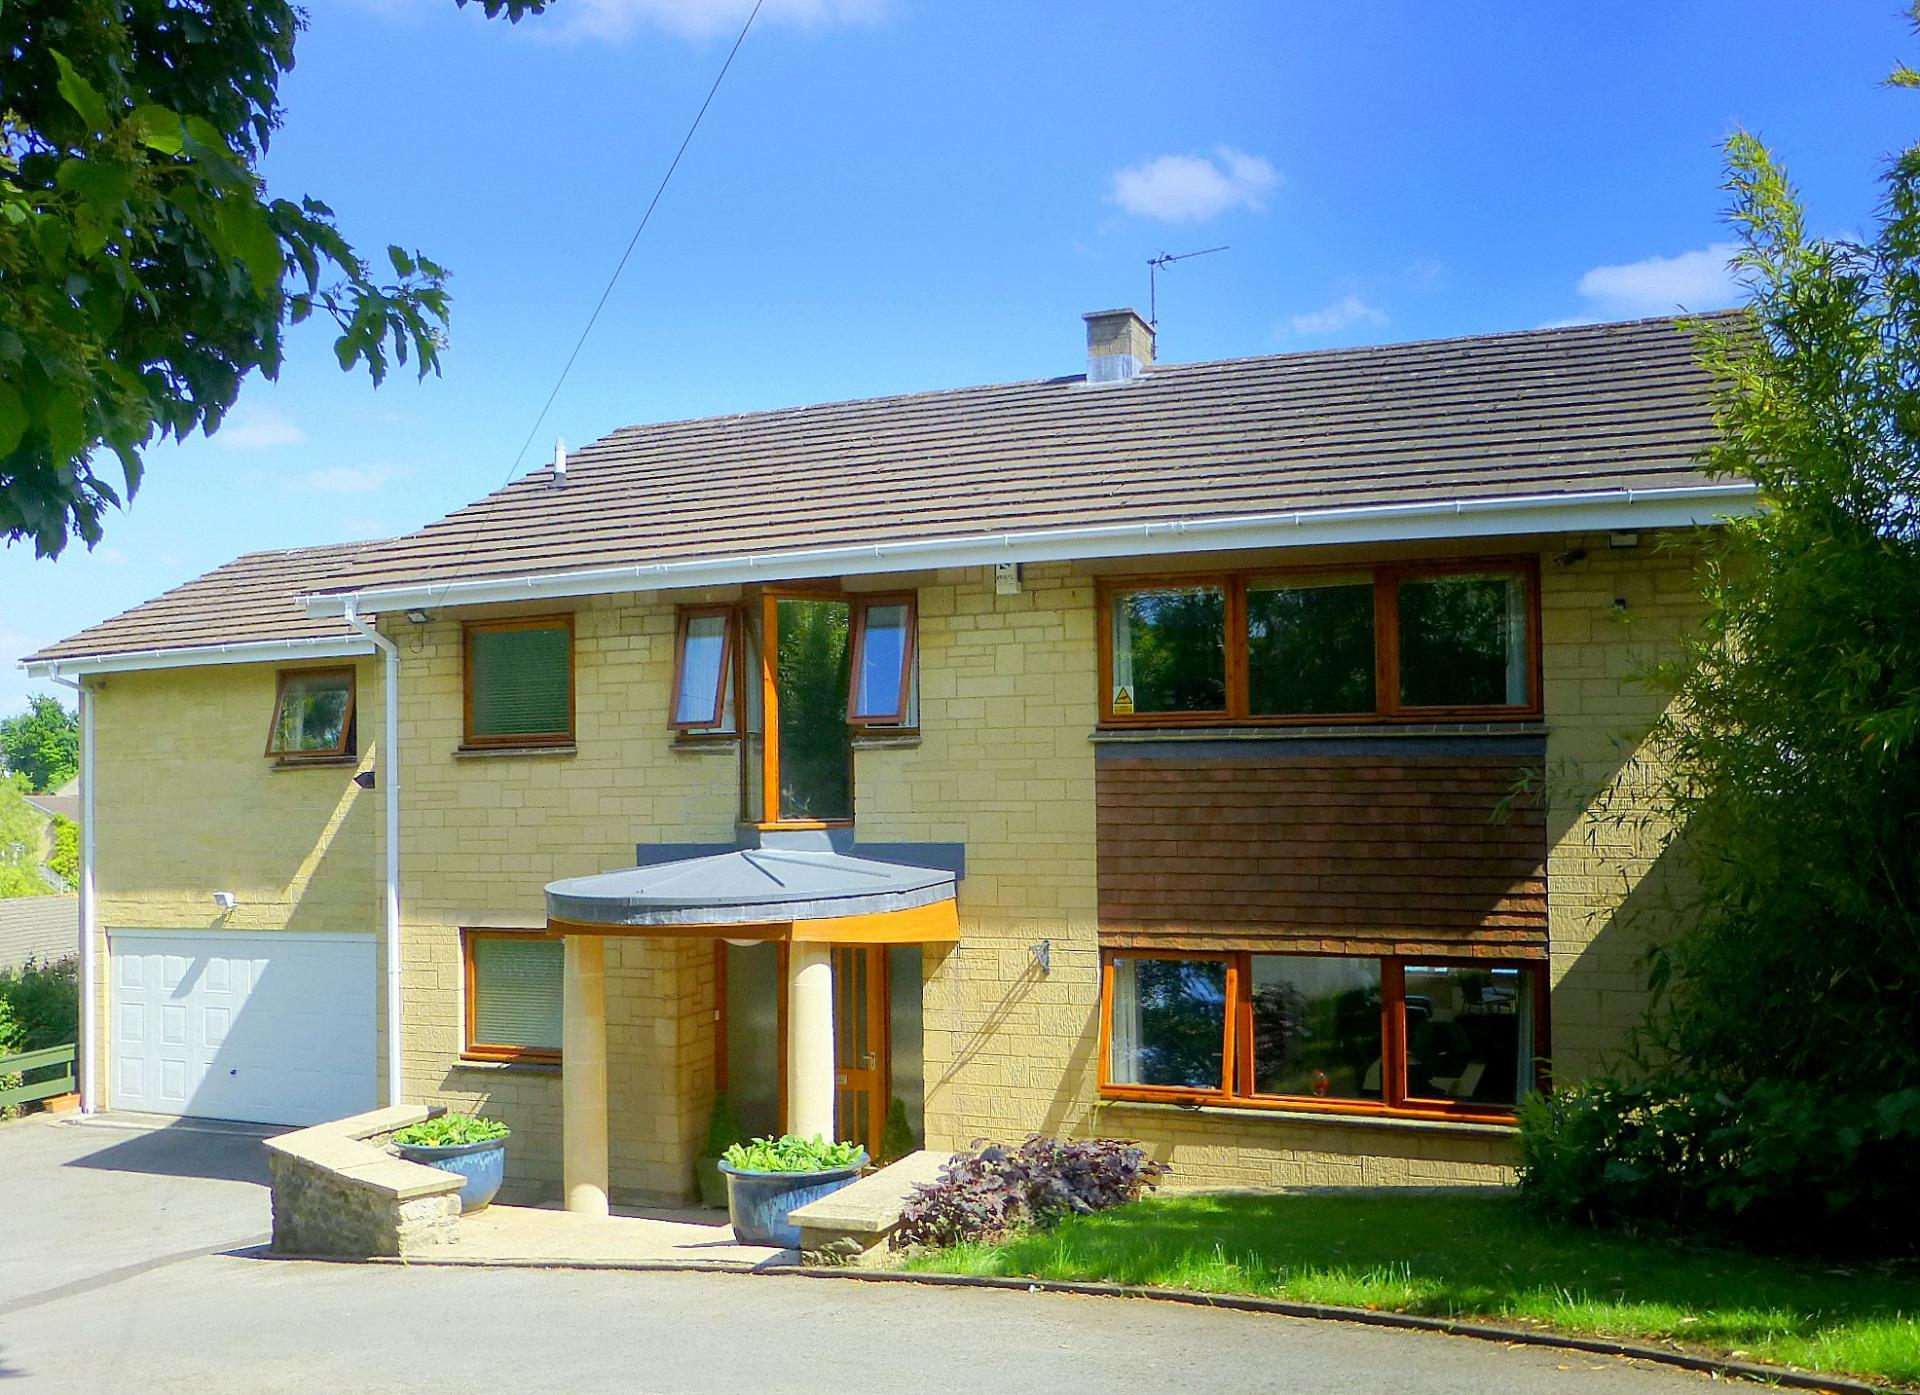 4 Bedroom Detached House For Sale In Wiltshire